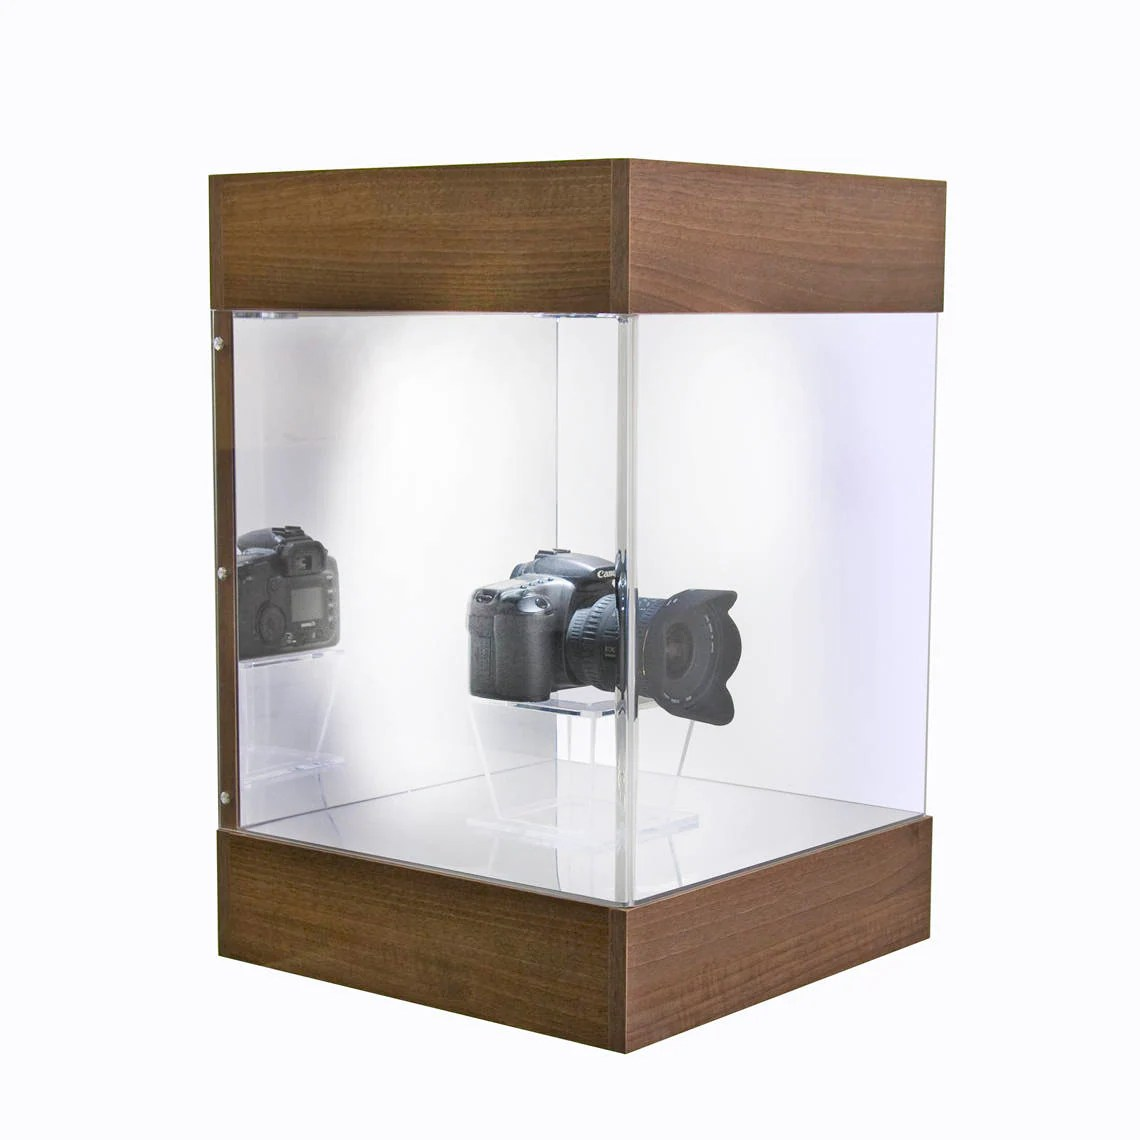 Wall Mounted Display Case Wall Mounting Retail Display Case Mounted Display Unit Made From Premium Wood Acrylic Manufactured In The Uk